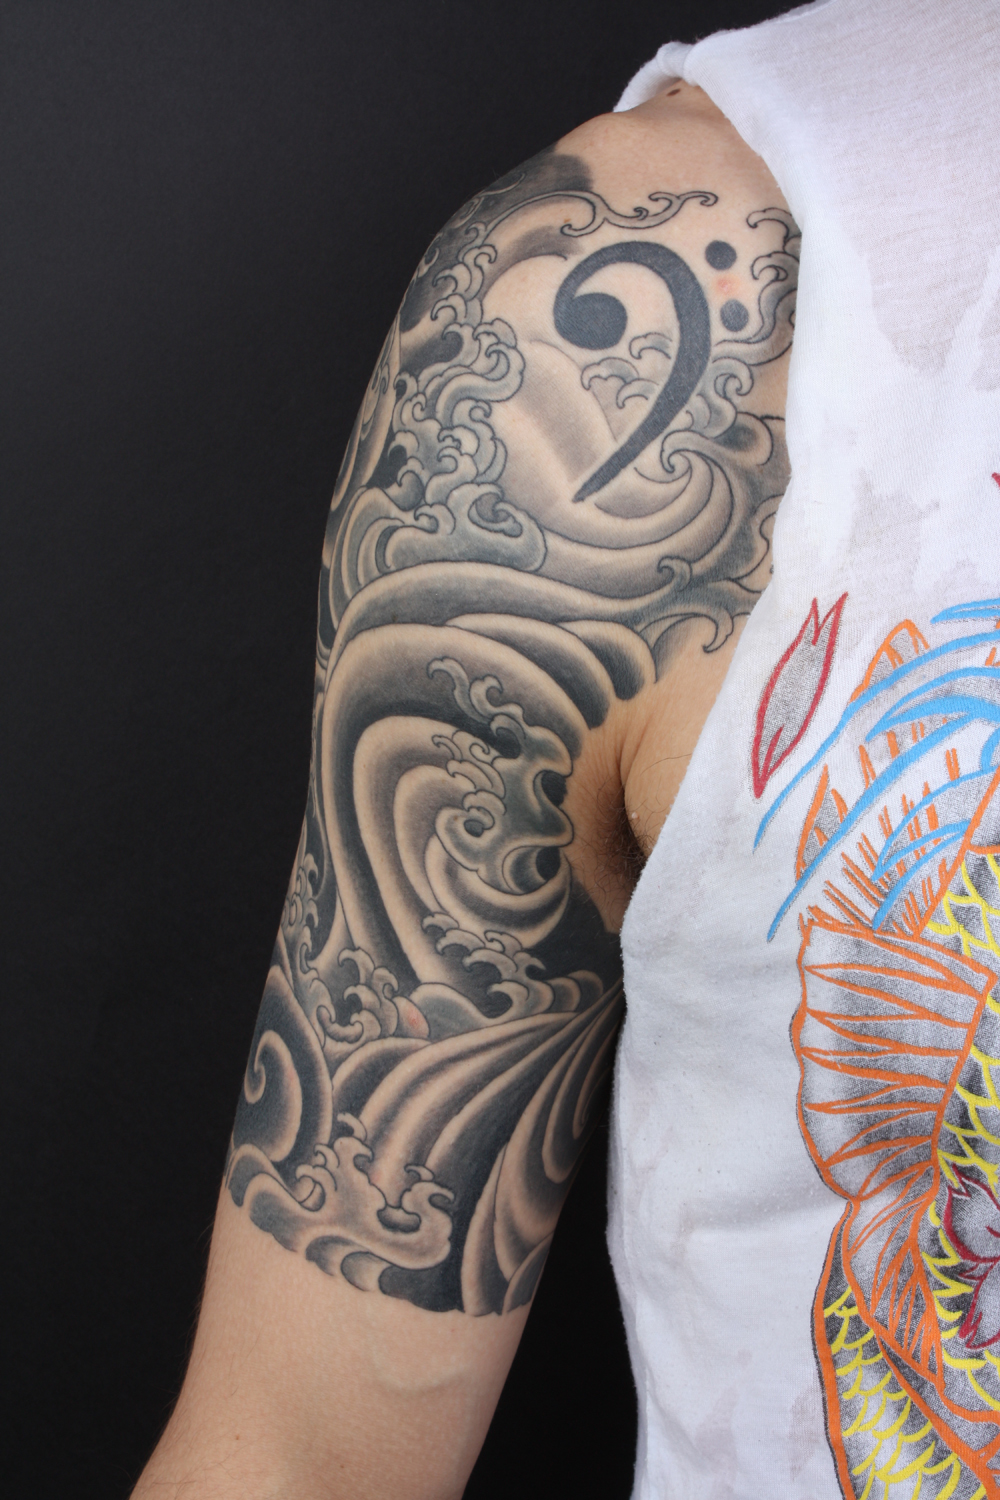 Sleeve Tattoo Drawings: Tattooing & Art By Yoni Zilber